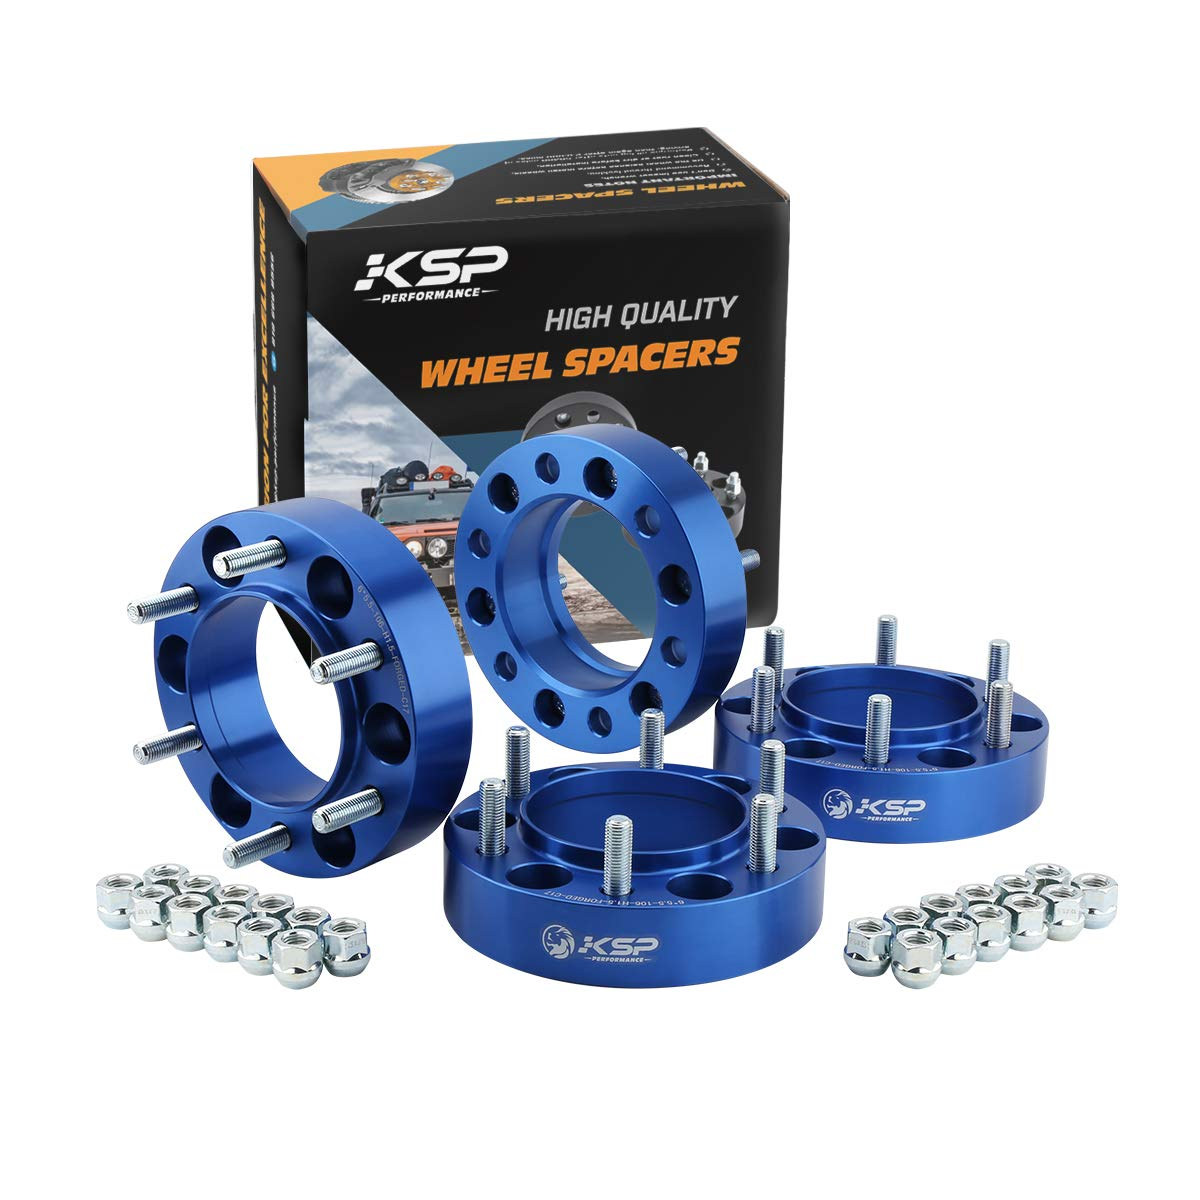 KSP 6X5.5 Wheel Spacers Fit for Tacoma 4runner, 1.5 inches Forged Hub Centric Adapters Kits fit 6 Lug Wheel (Package of 4), 2 Years Warranty (B07DLX519N)